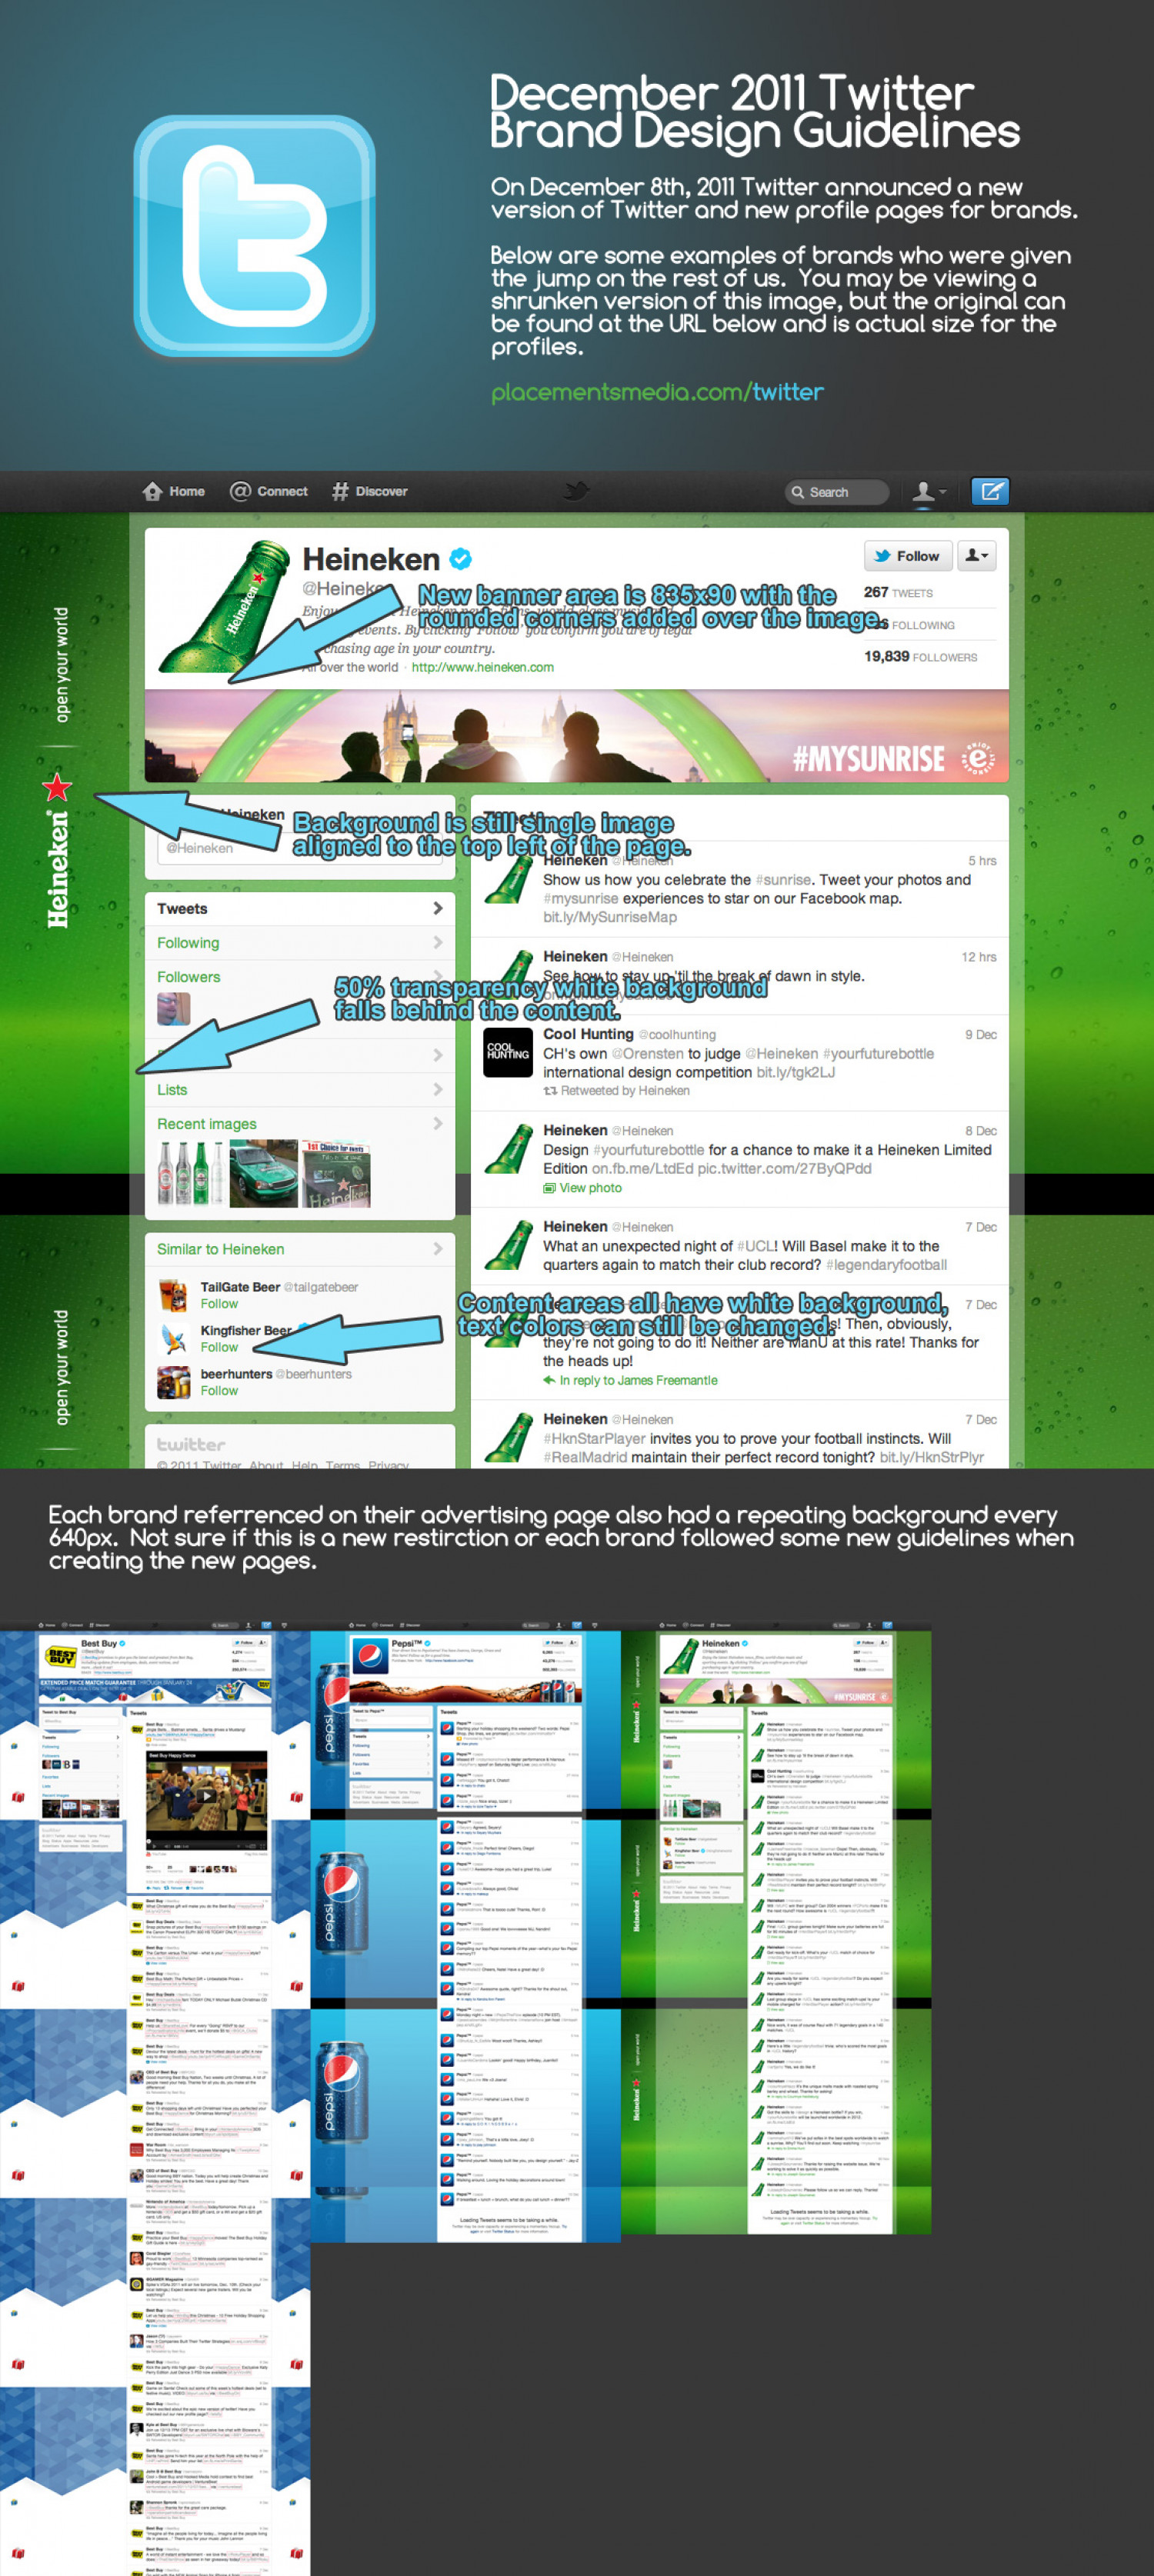 Sneak Peak at new Twitter Pages, December 2011 Infographic